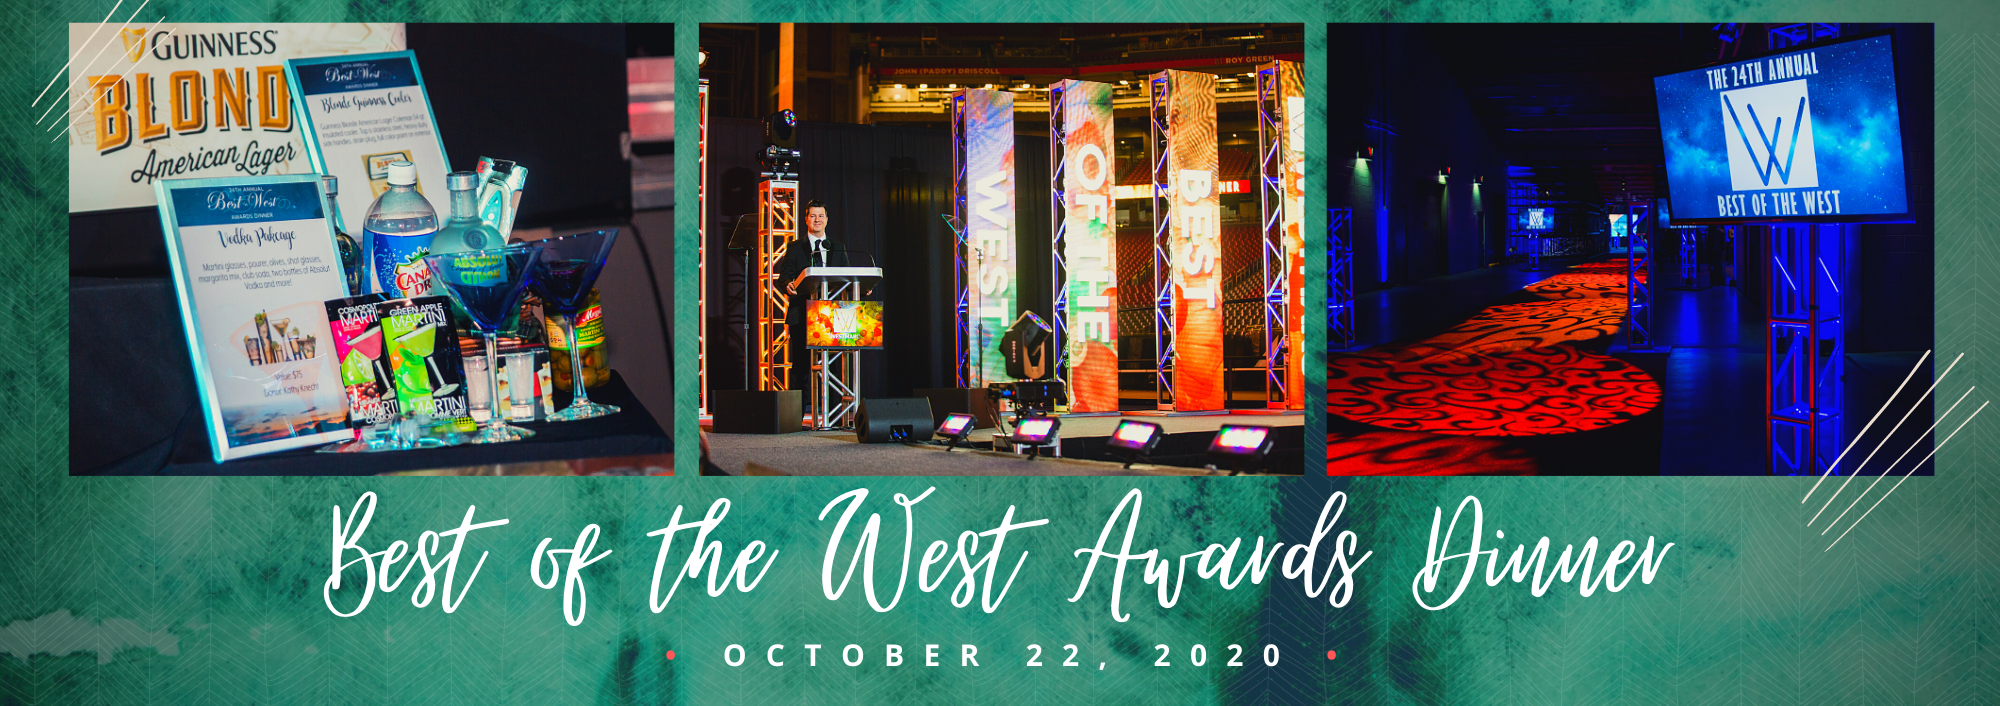 Best of the West Awards Dinner honors people, projects and programs that move the West Valley forward!  Join us for this outdoor dining and entertainment evening under the stars at Phoenix Raceway in Avondale on October 22nd!